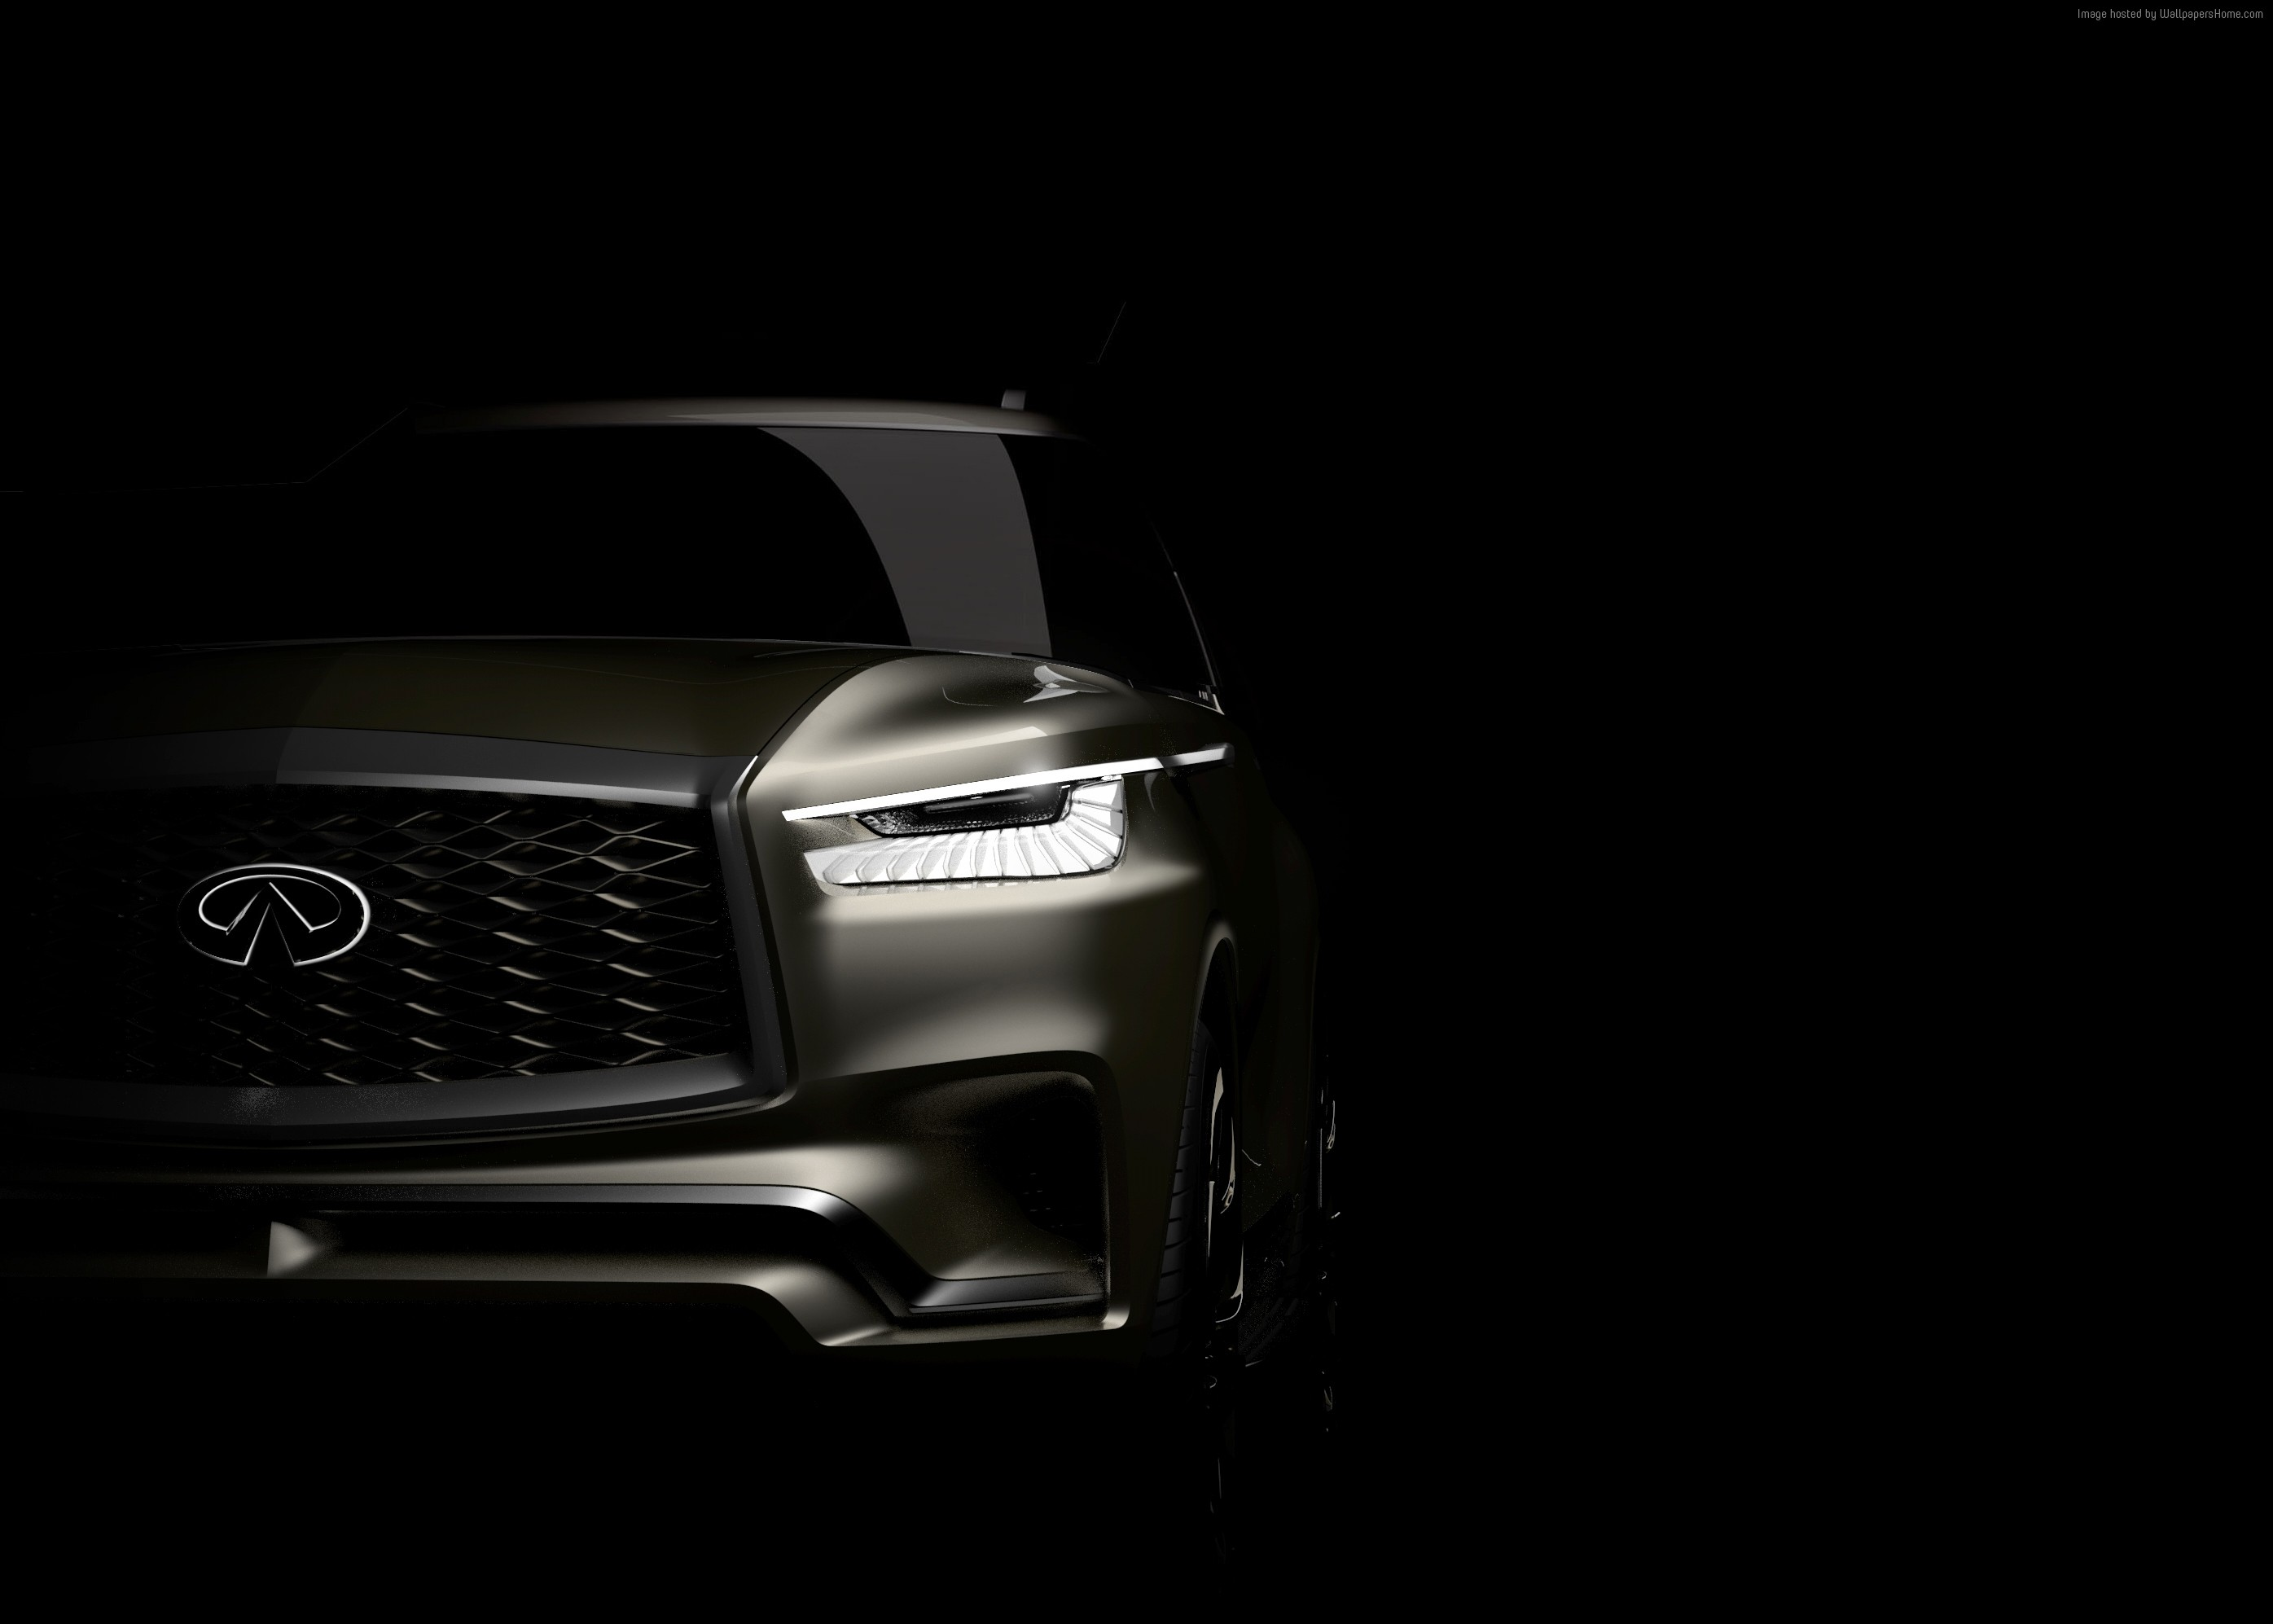 2791x1994 - Infiniti QX80 Wallpapers 25